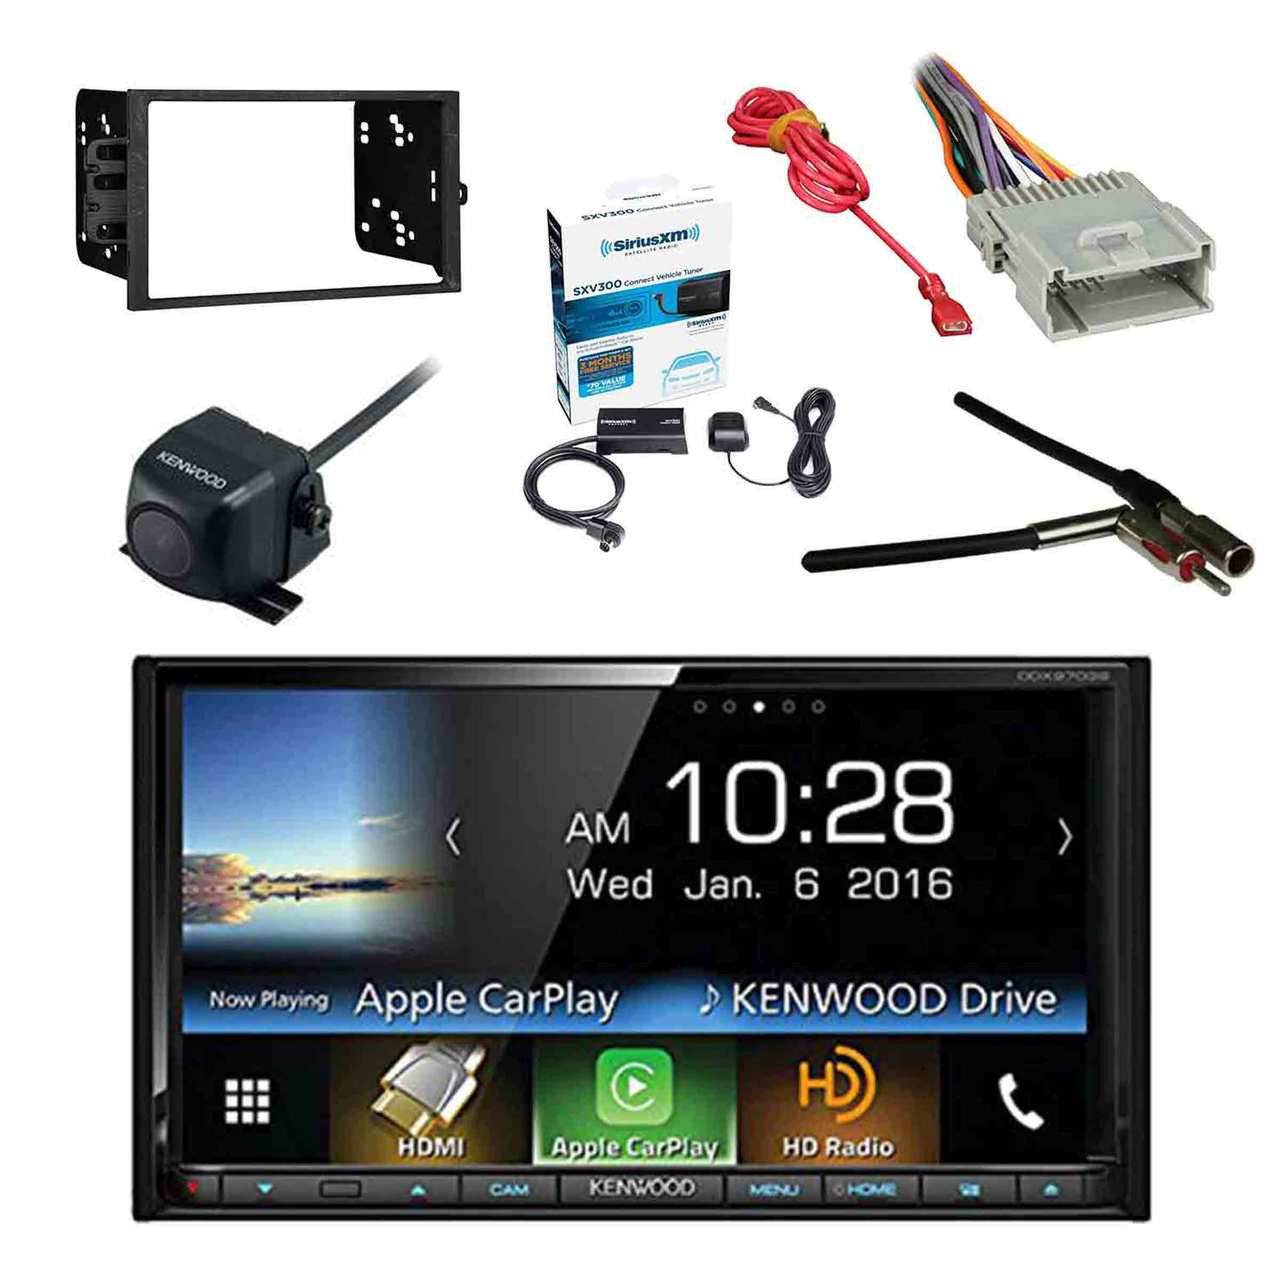 medium resolution of kenwood ddx9703s 2 din dvd cd am fm car stereo receiver w sirius radio tuner kenwood rearview wide angle camera metra 2din dash kit for radio